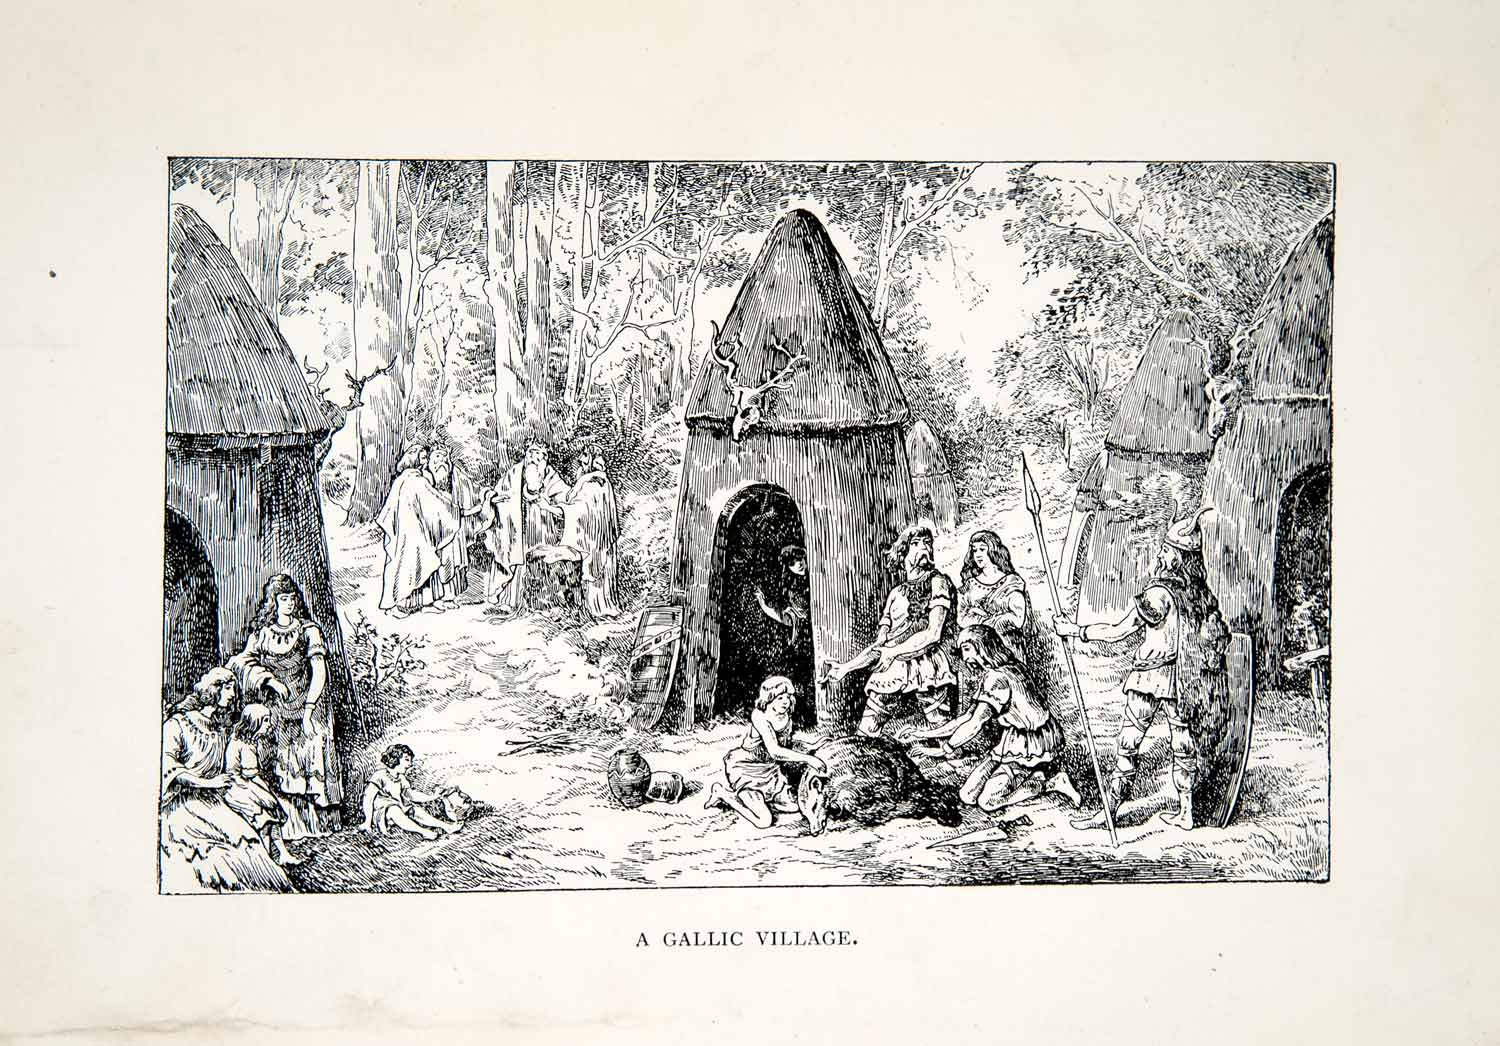 1913 Wood Engraving France Gallic Village Middle Ages Tribe Warrior Hut Art XEJ9